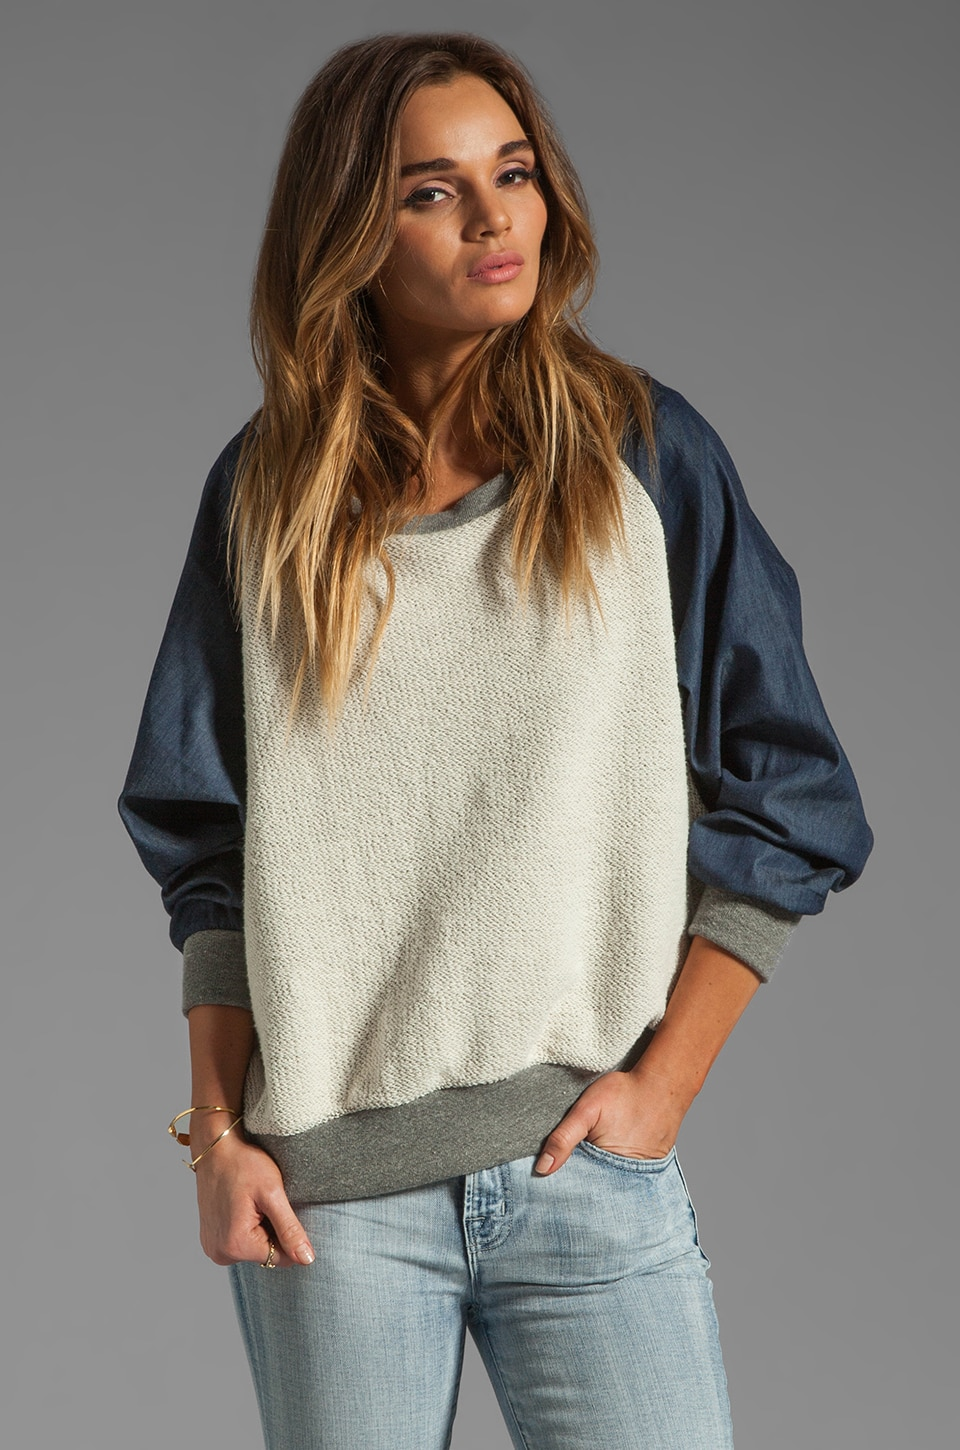 Riller & Fount Angelika Raglan Sweatshirt in Uptown/Flint